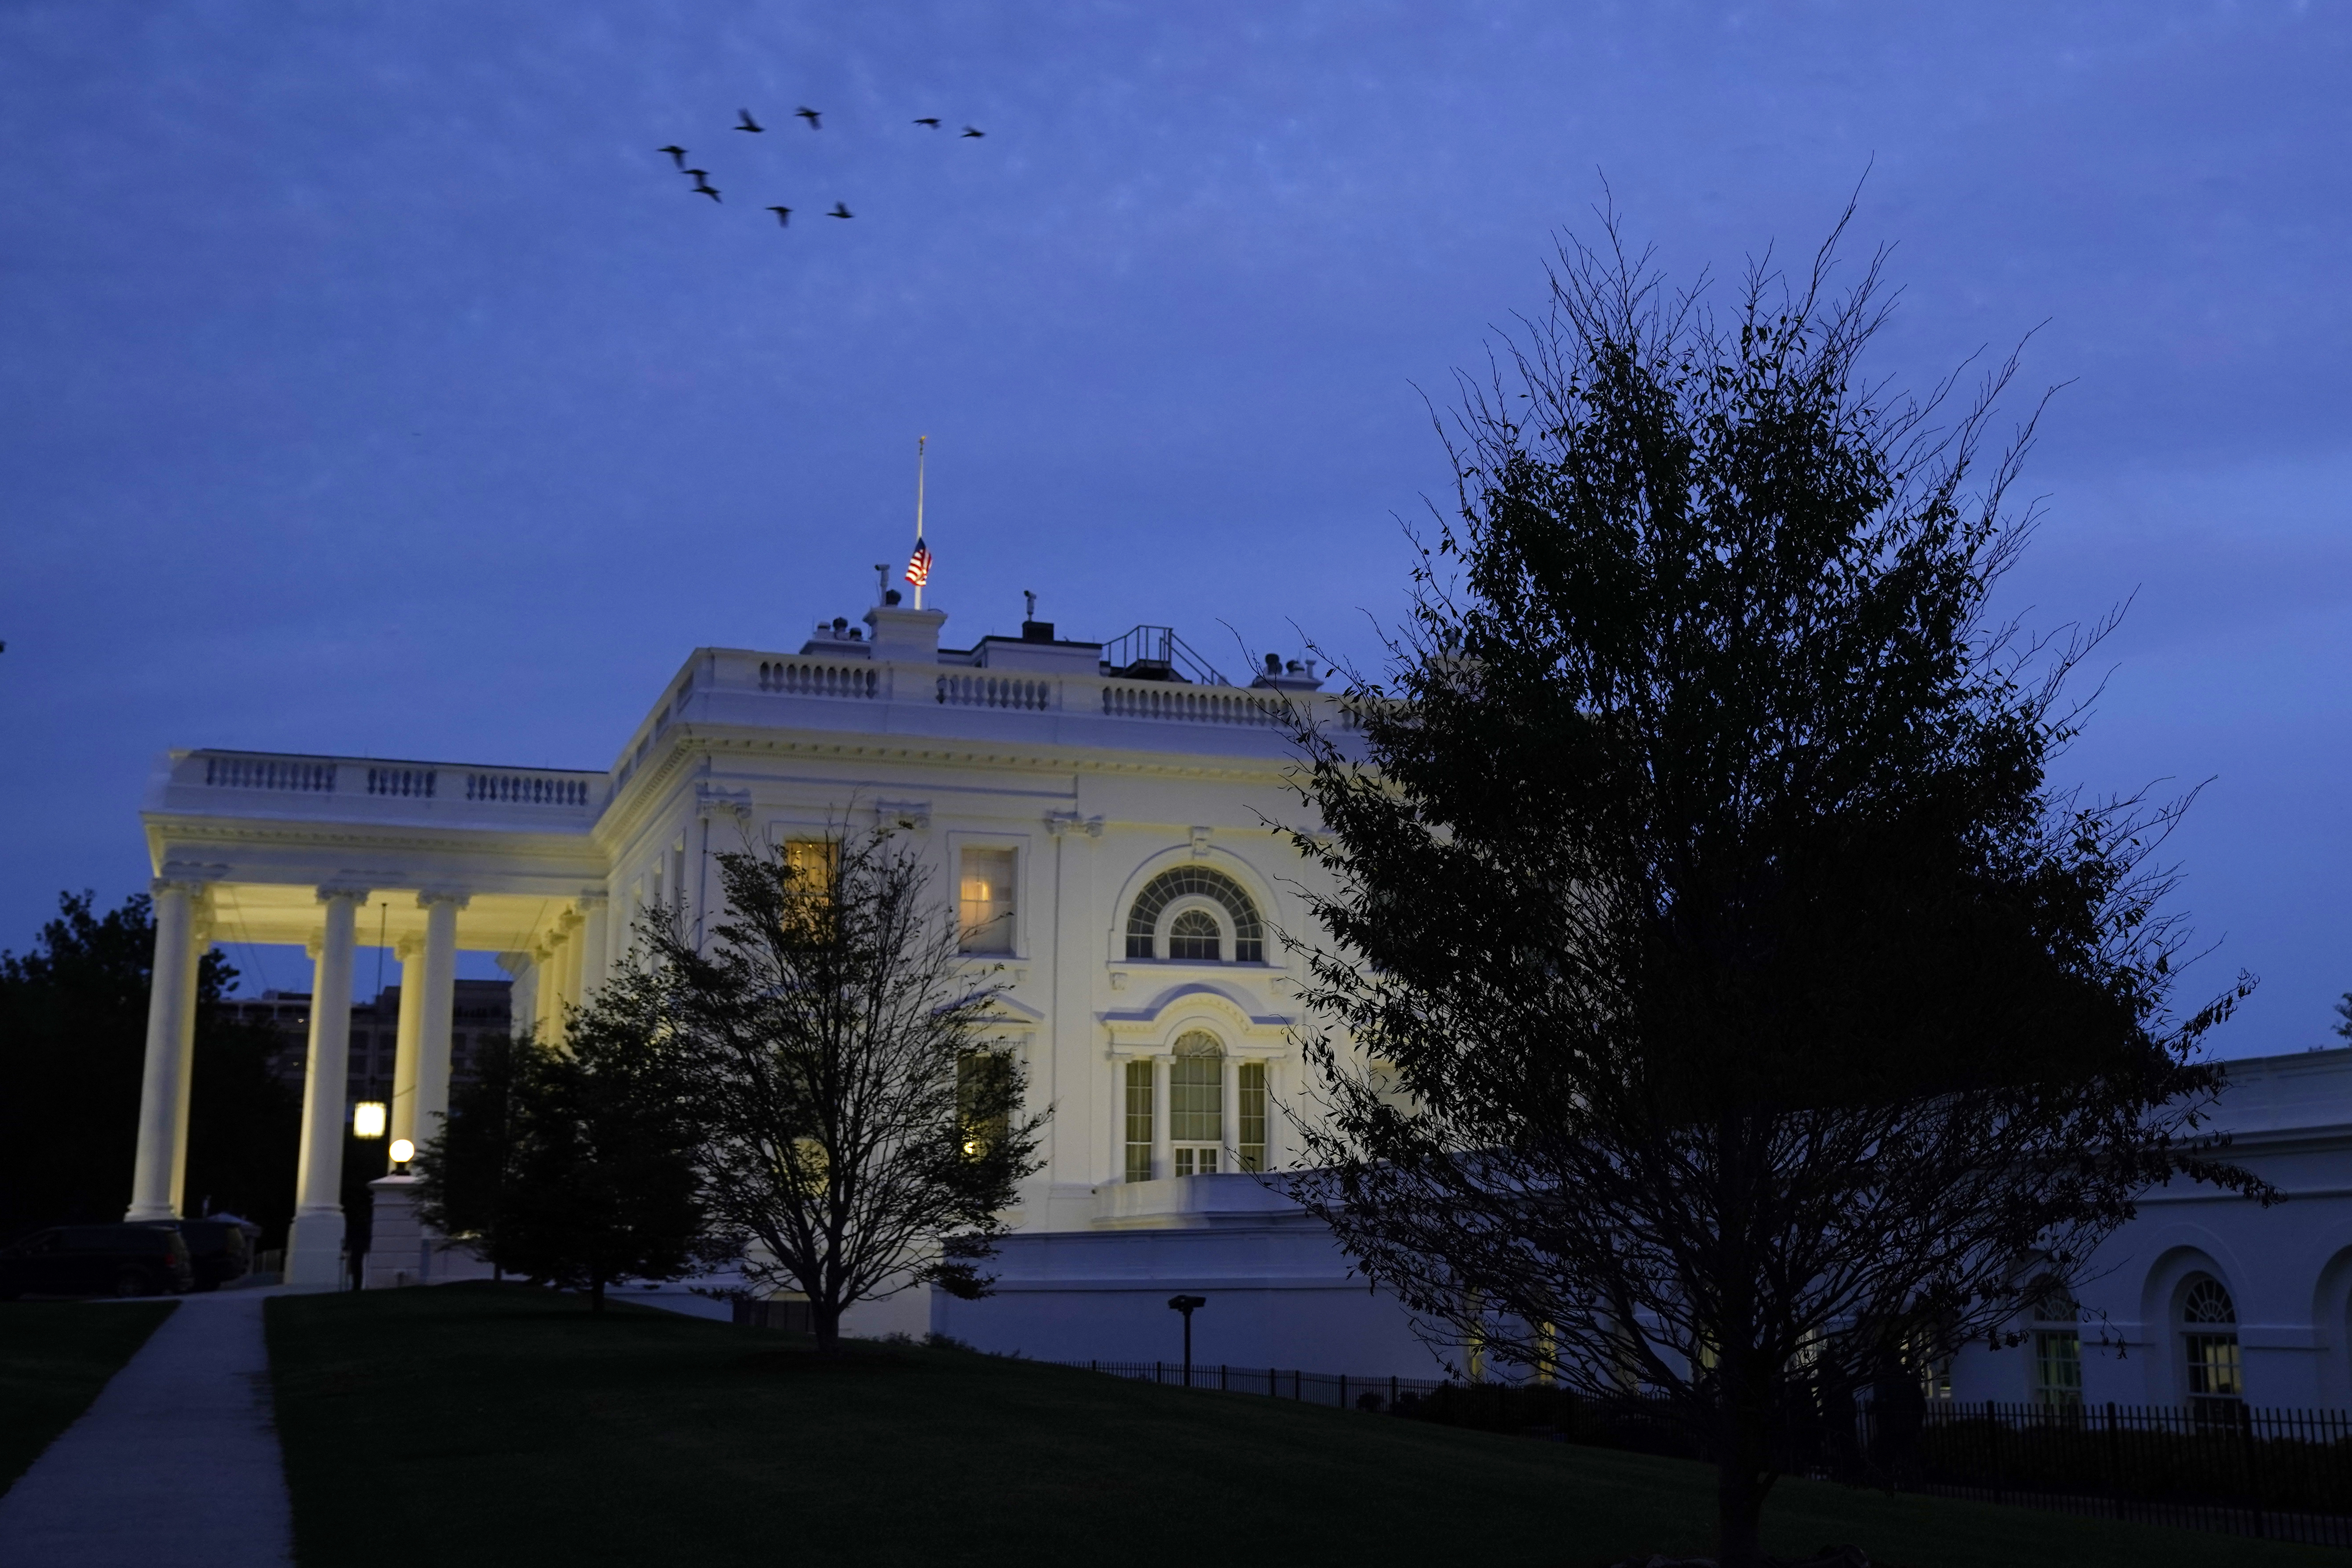 The White House is seen on Sunday evening, October 4 in Washington, DC.